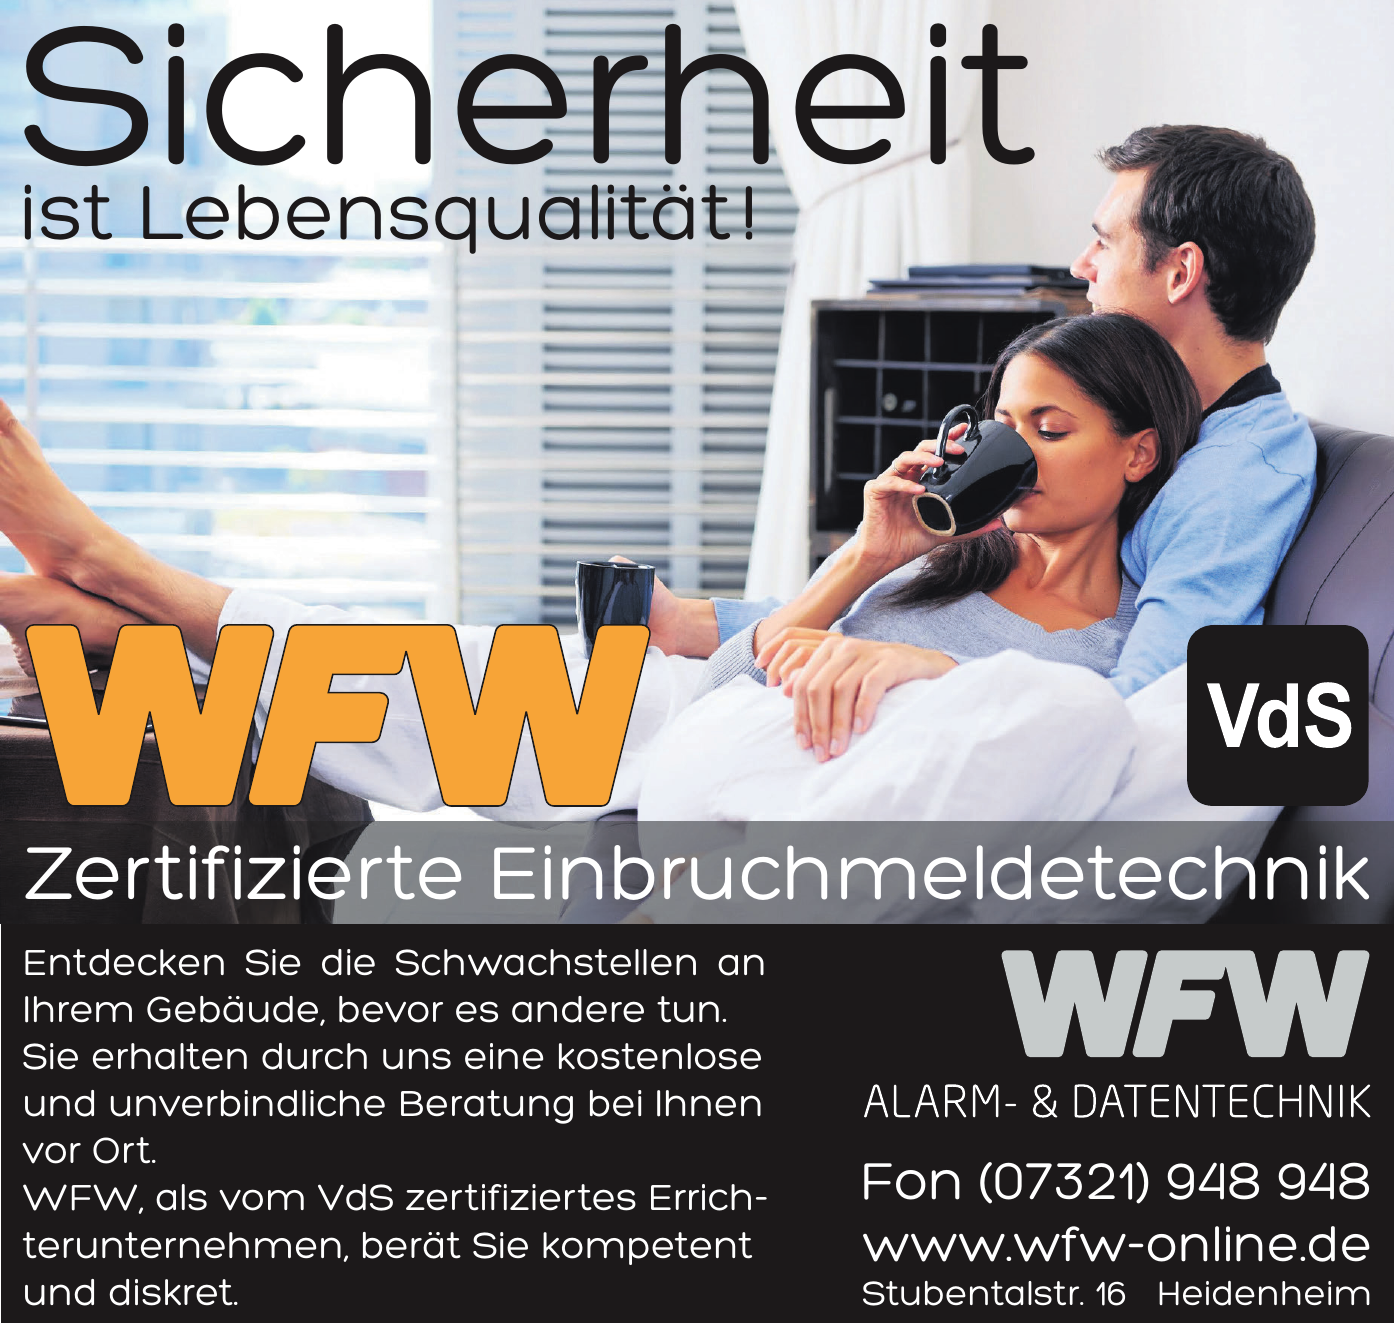 WFW Alarm- & Datentechnik